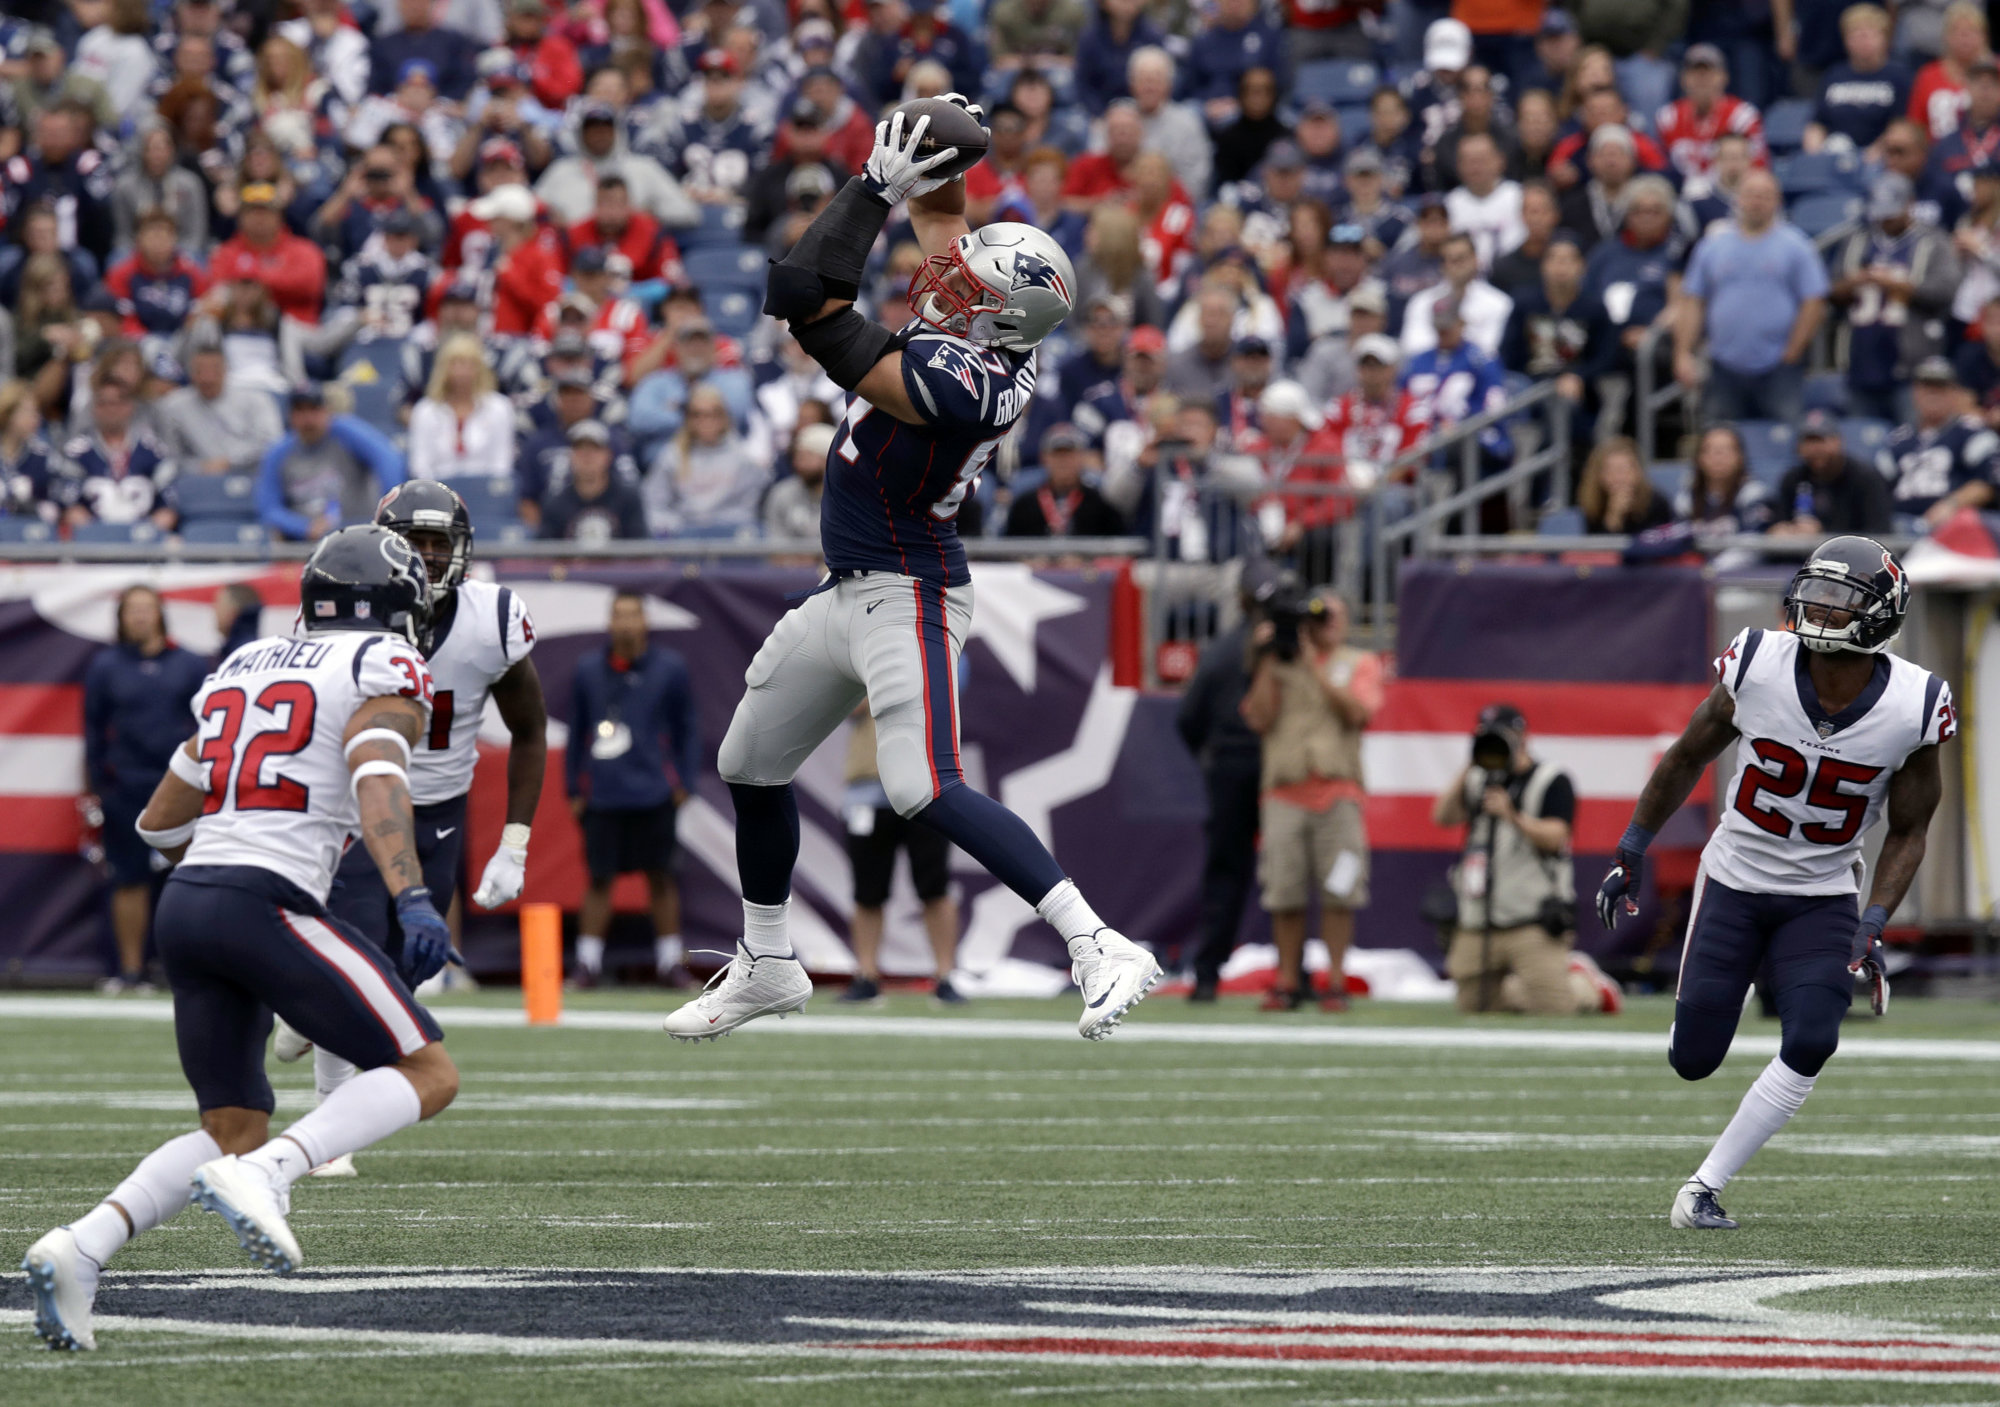 New England Patriots tight end Rob Gronkowski (87) catches a pass between Houston Texans defensive backs Tyrann Mathieu (32) and Kareem Jackson (25) during the second half of an NFL football game, Sunday, Sept. 9, 2018, in Foxborough, Mass. Gronkowski fumbled and Mathieu recovered on the play. (AP Photo/Charles Krupa)